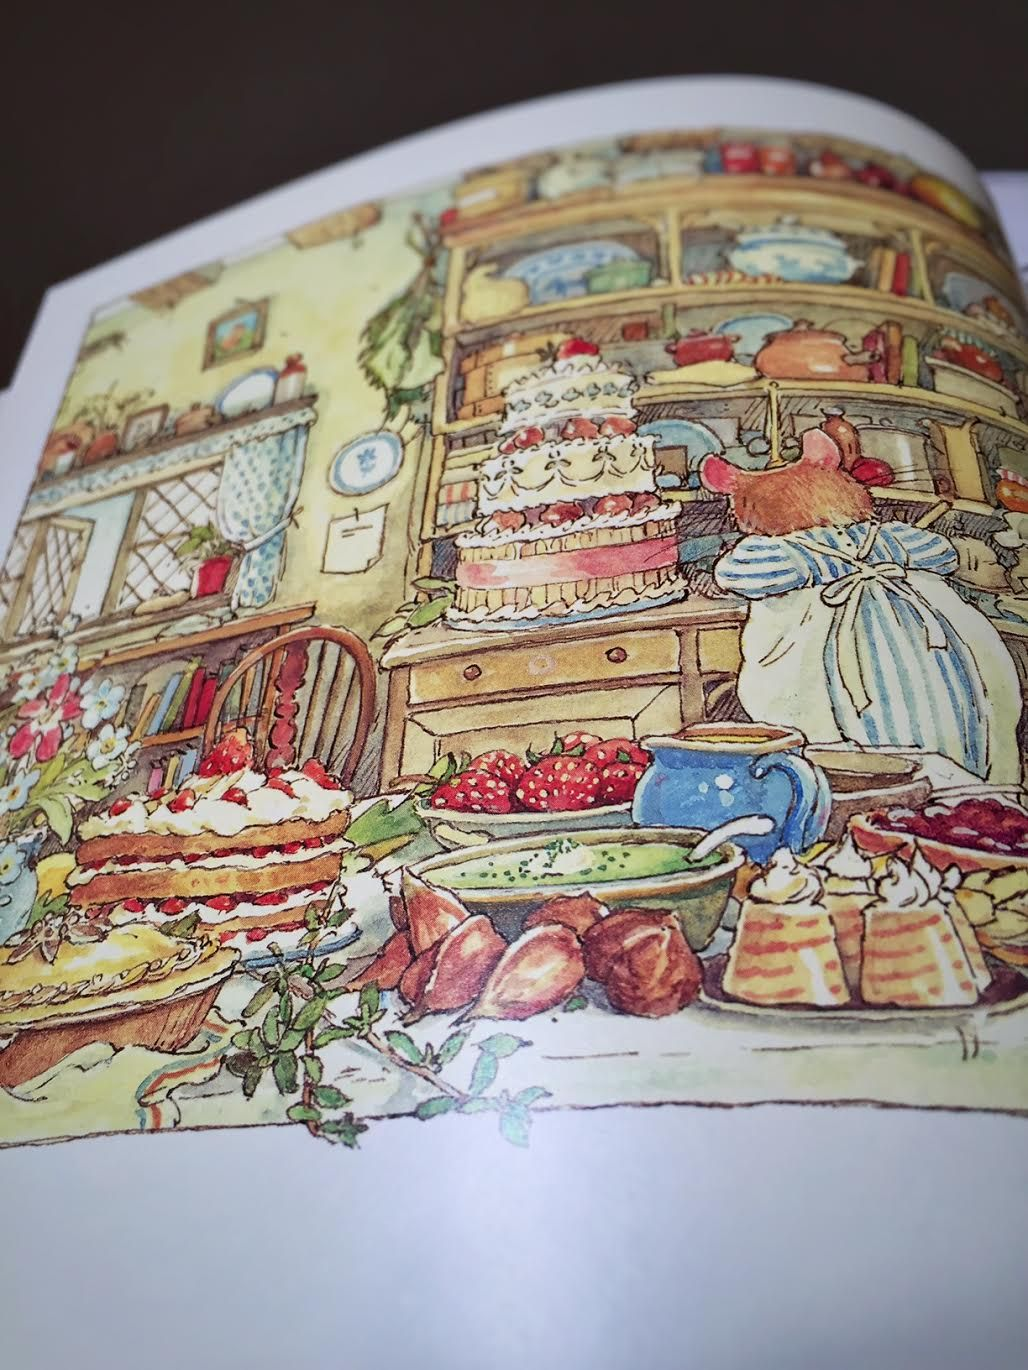 Summer Story with strawberries from The Complete Brambly Hedge book